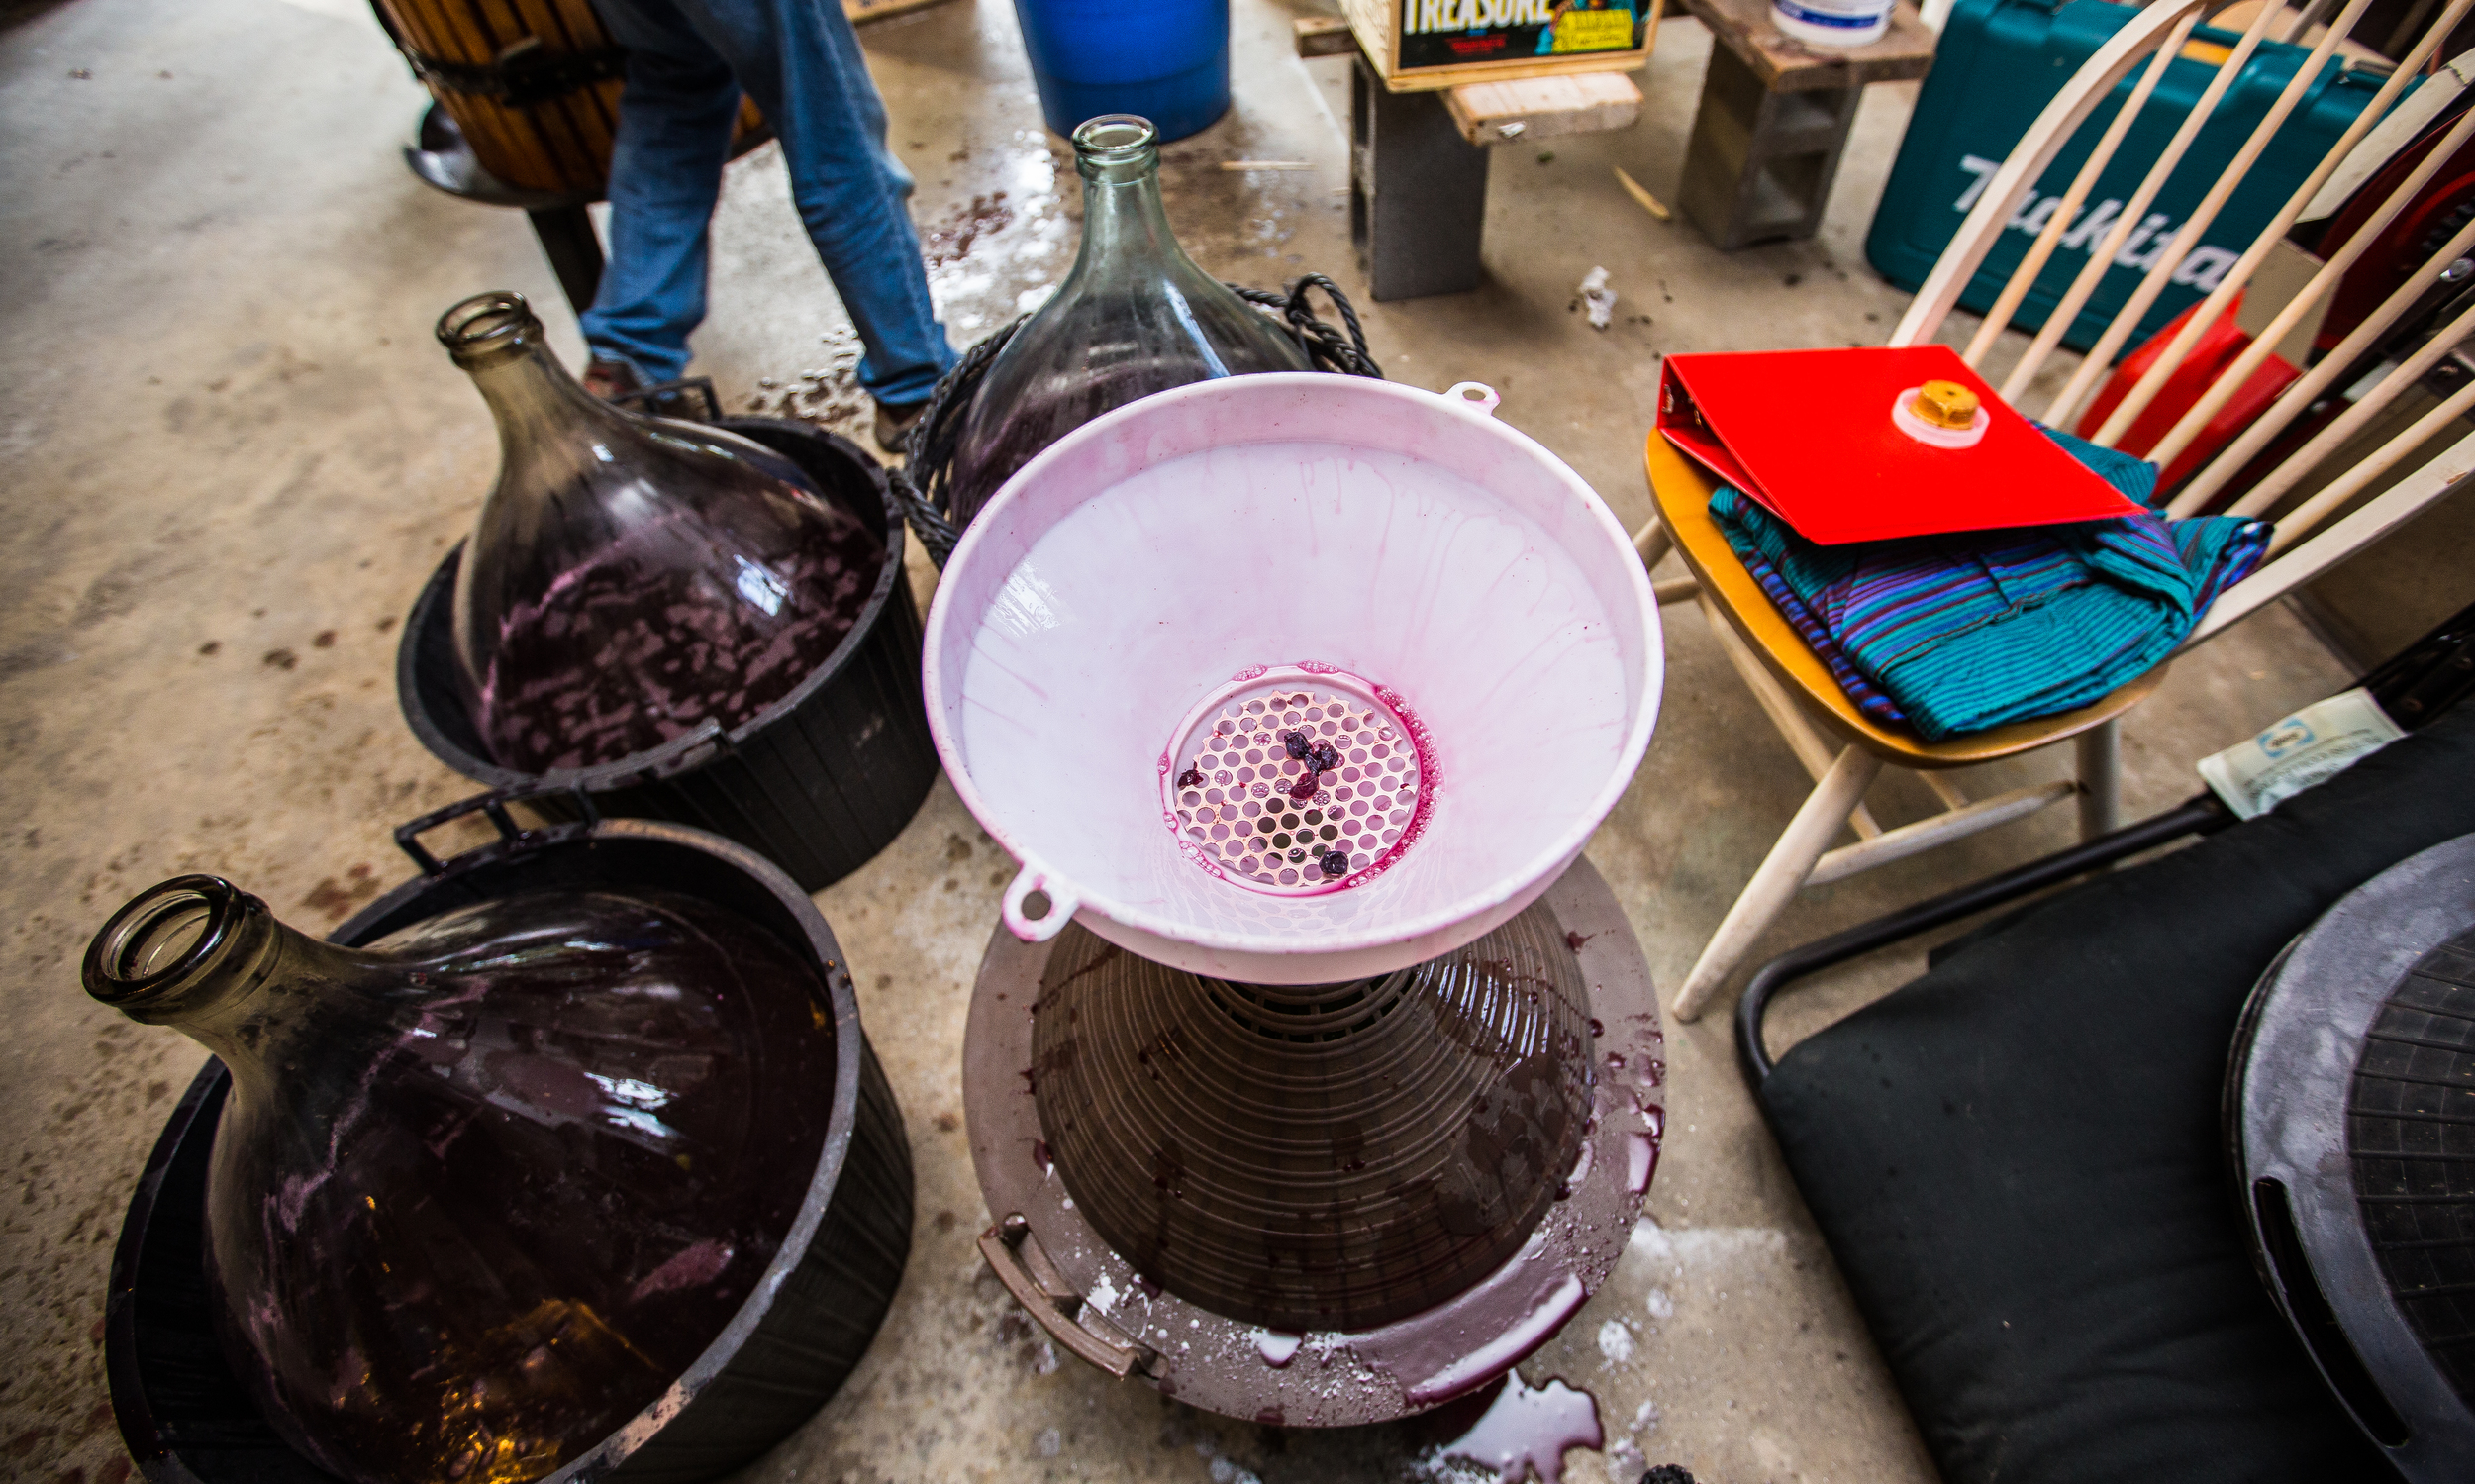 WINEMAKING_100515-1.jpg